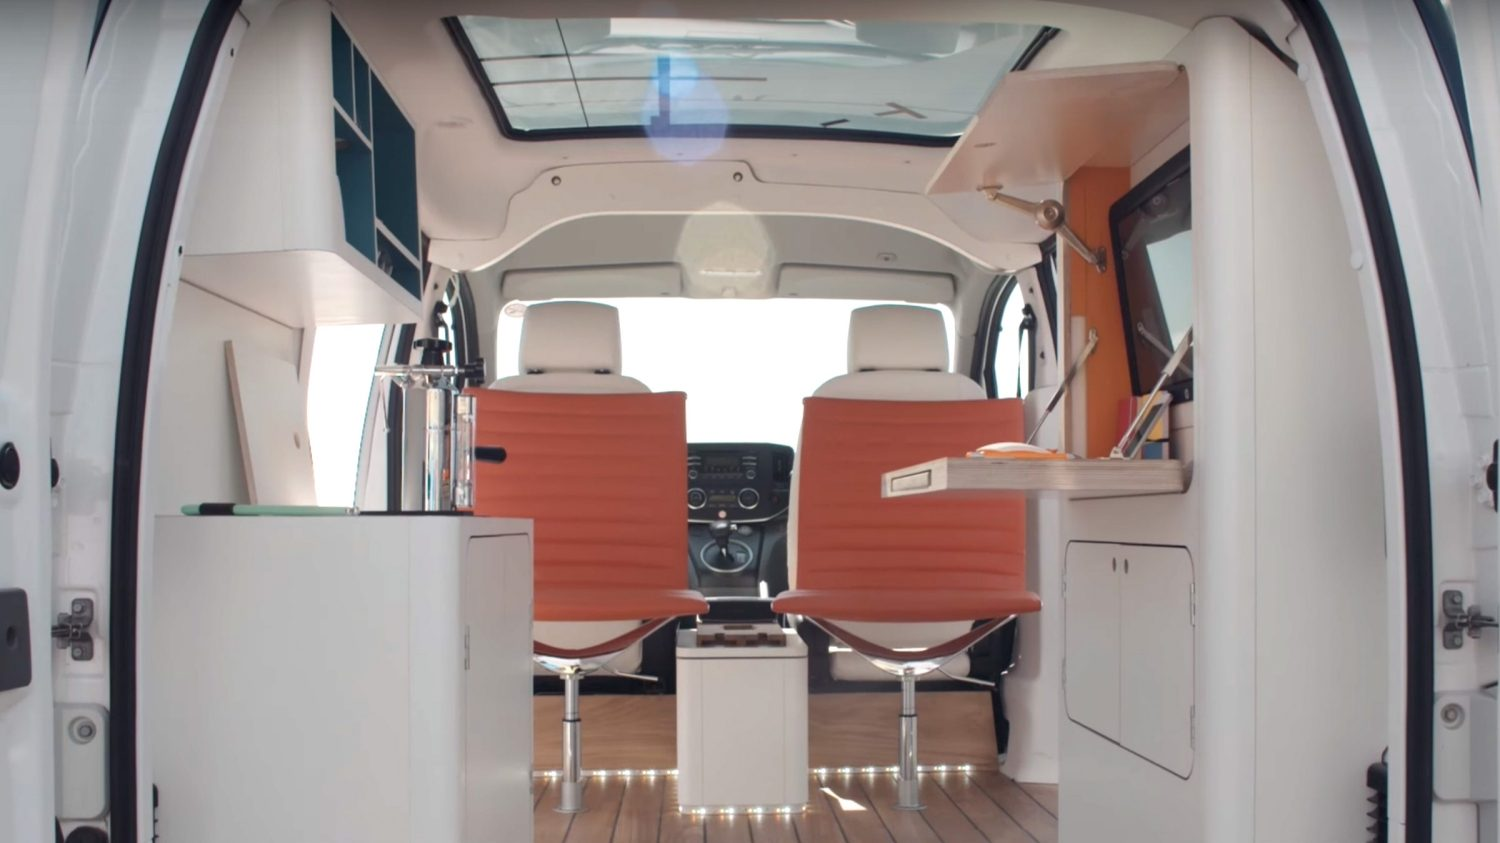 Nissan e-NV200 as a working office